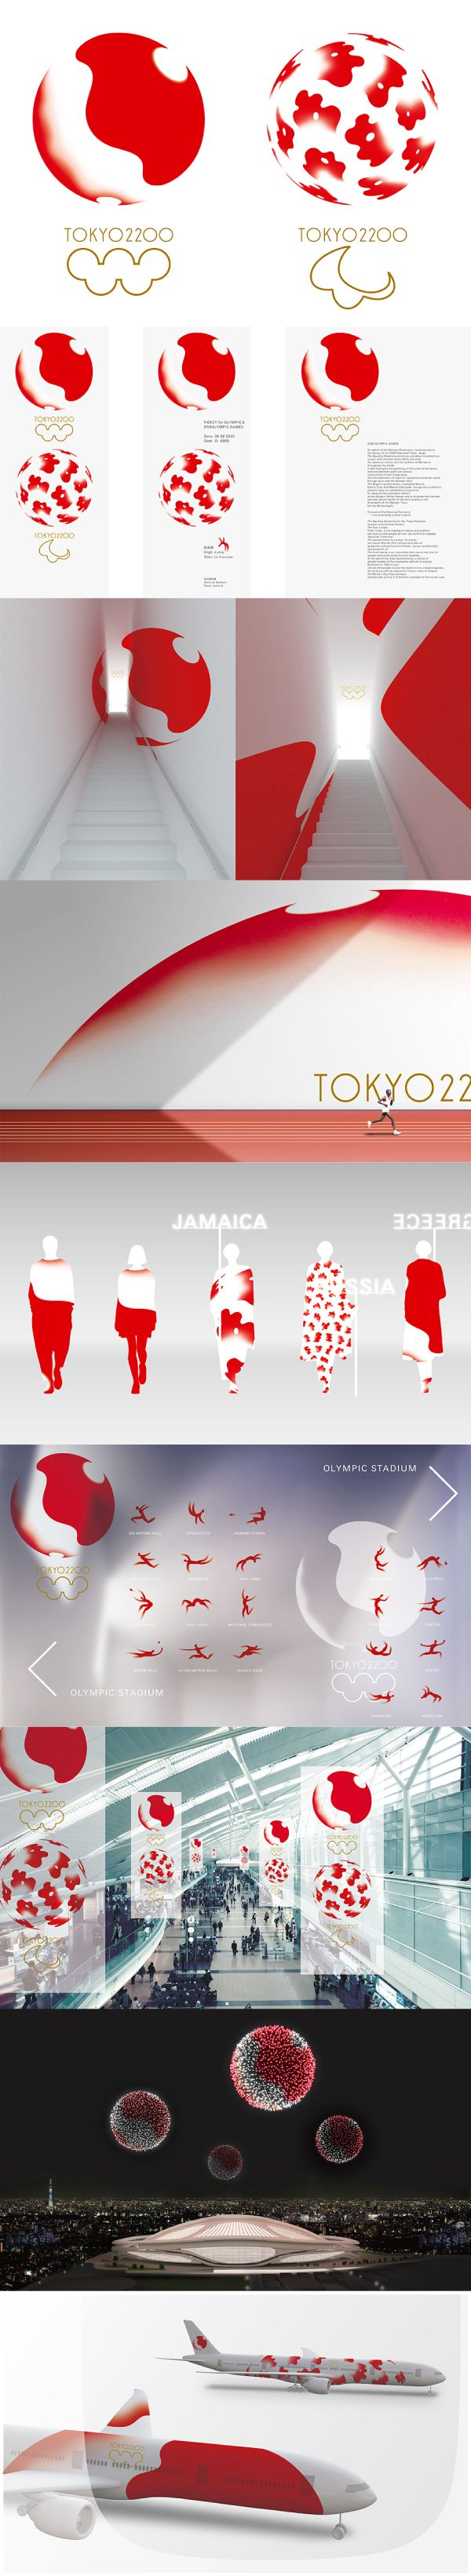 Kenya Hara for Olympics                                                                                                                                                                                 More